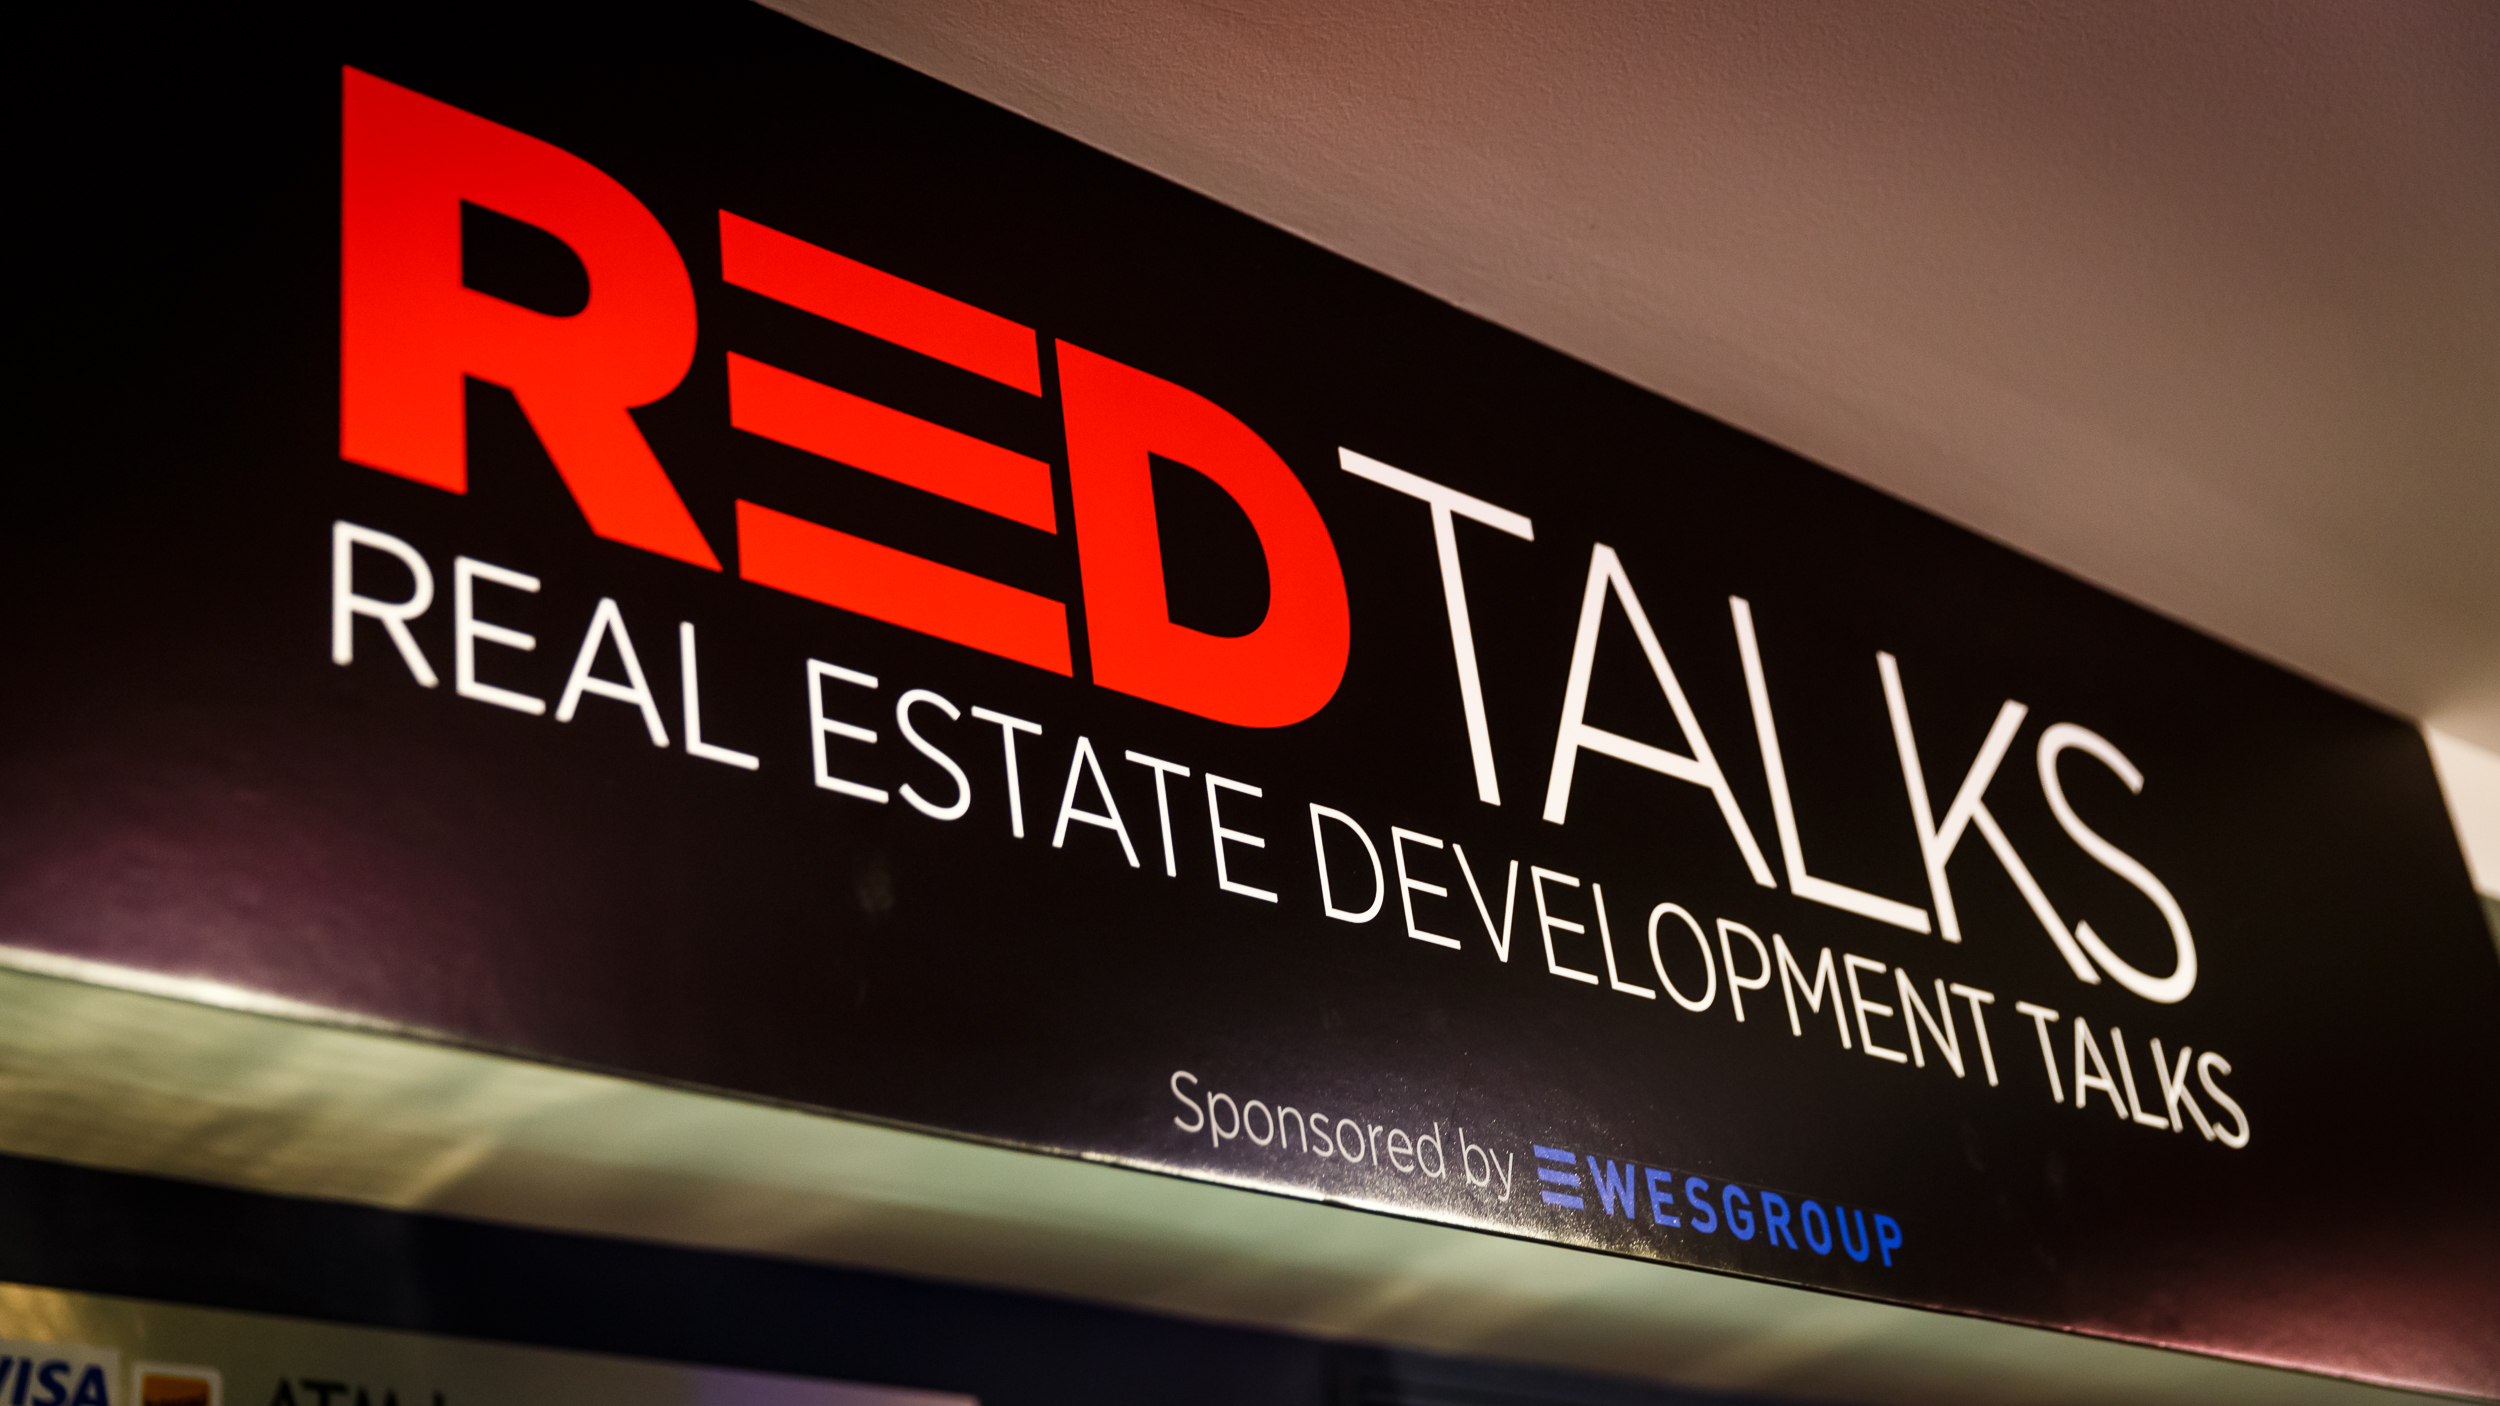 Wesgroup-RED-talks-photo-7.jpg